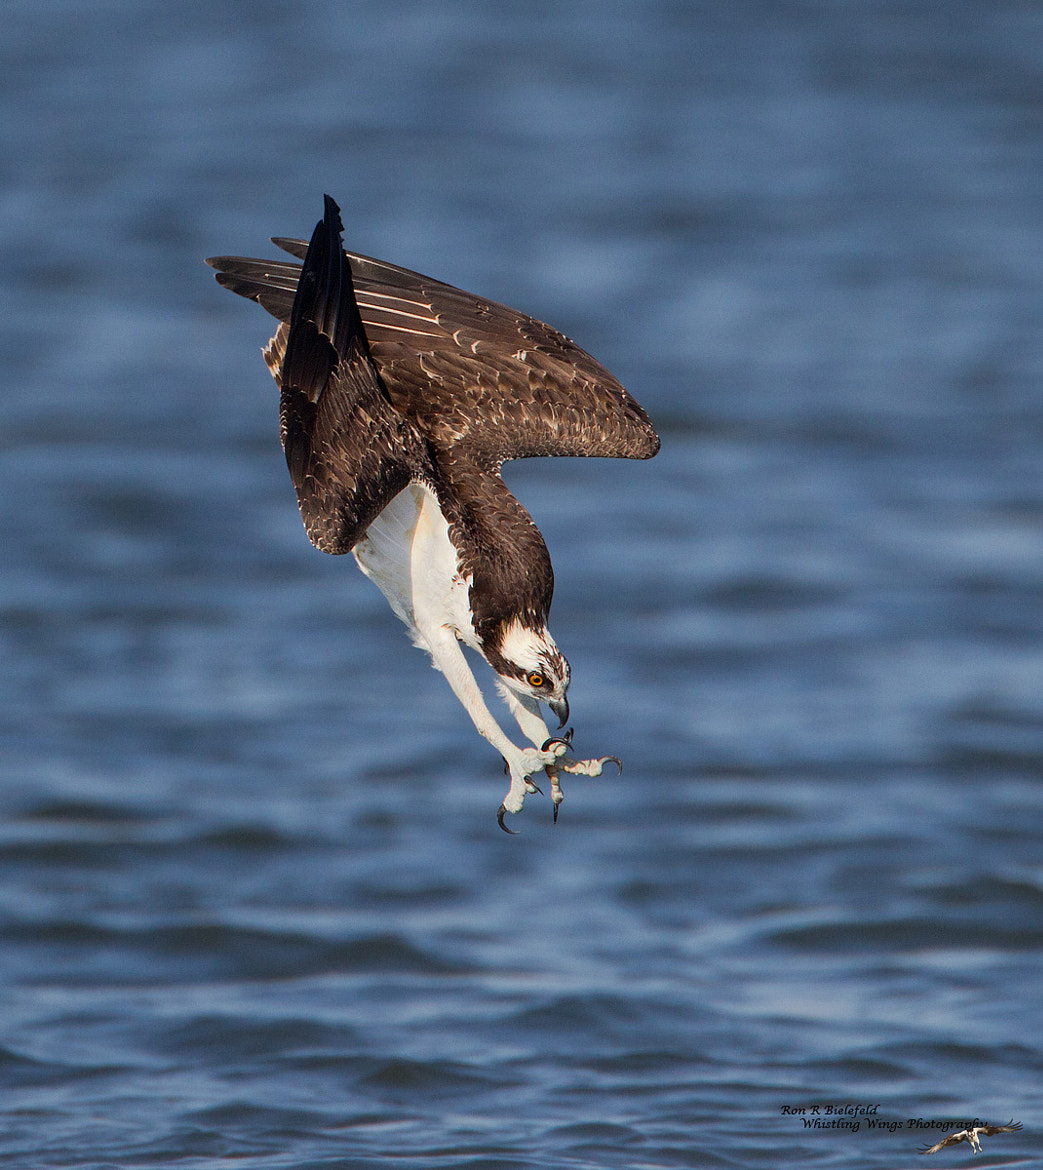 Photograph Sudden Death - osprey by Ron Bielefeld on 500px